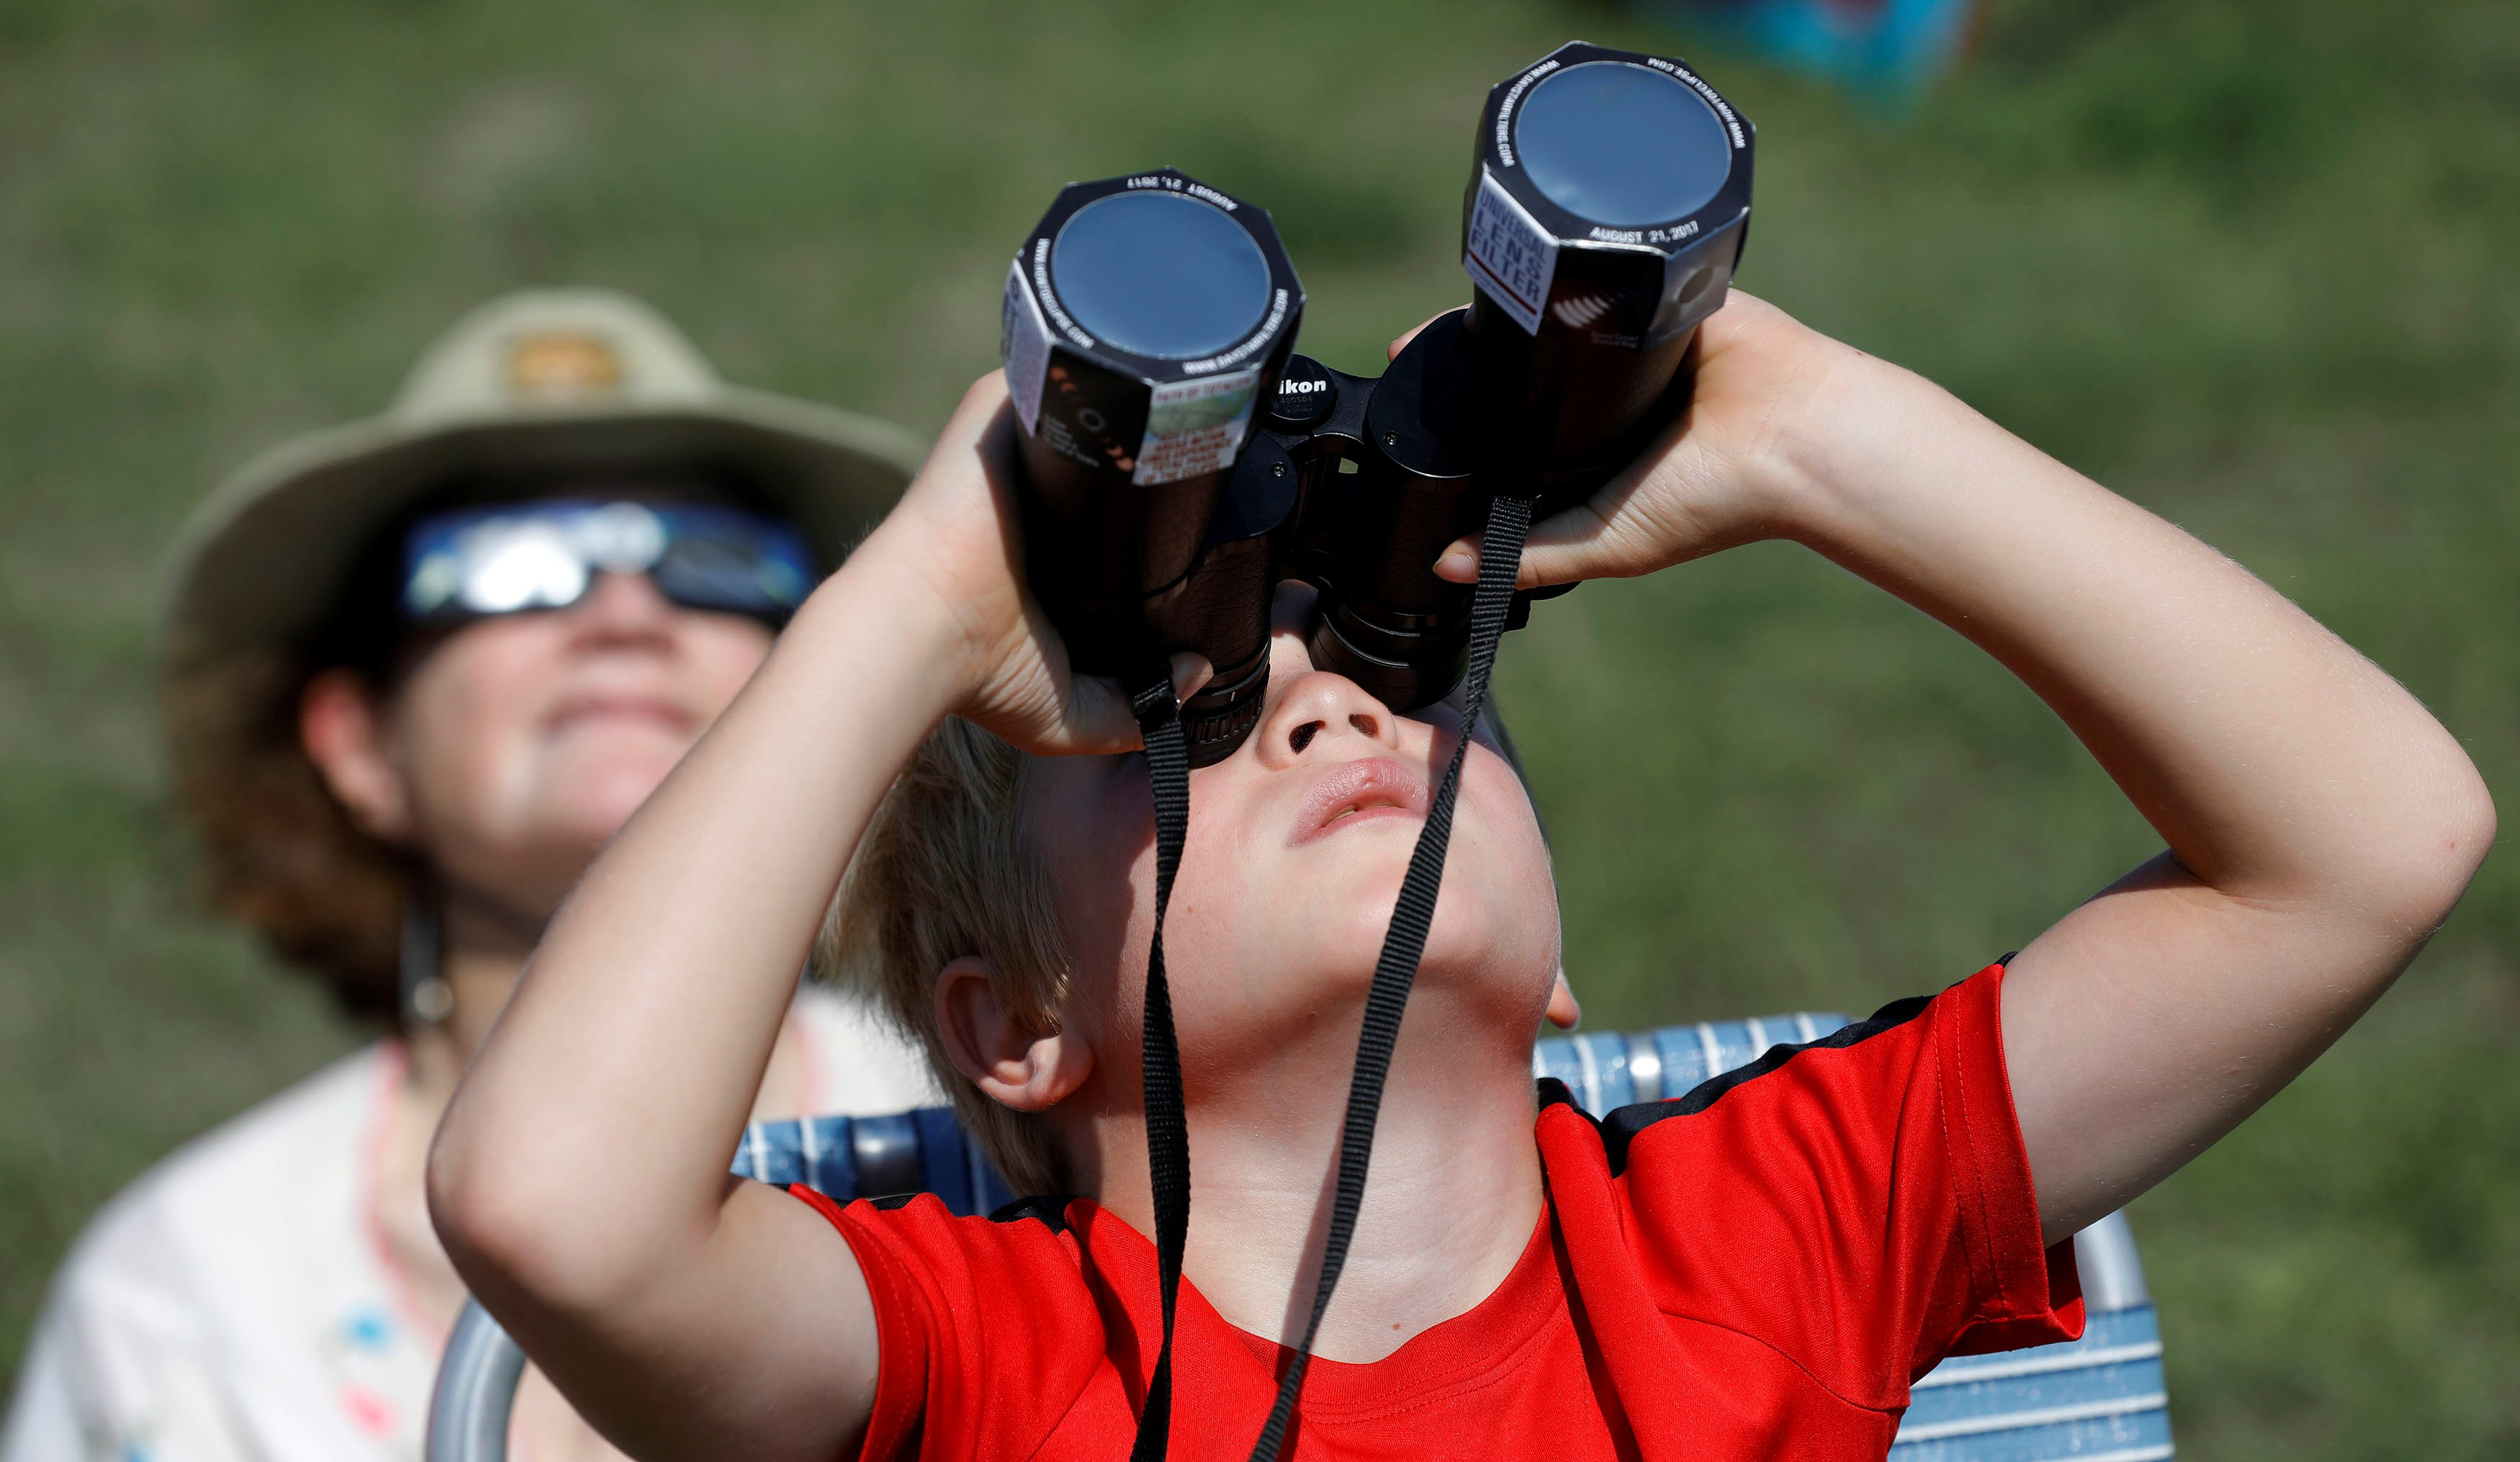 Rafi Davis, 7, of Sliver Springs, MD., watches the solar eclipse at Carhenge in Alliance